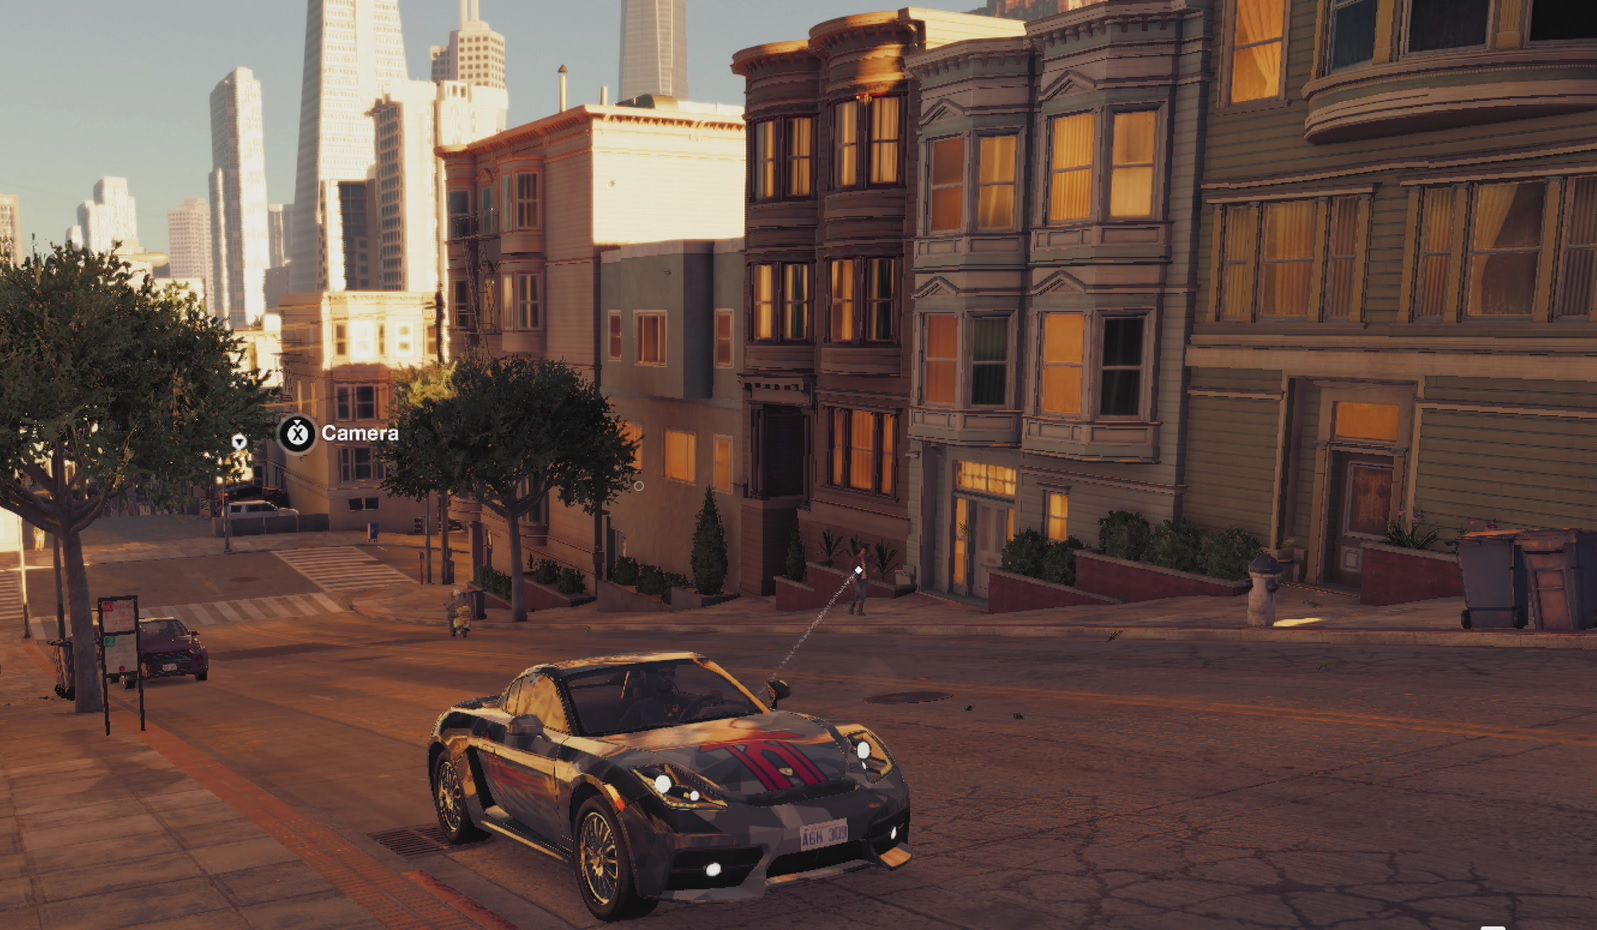 Watch Dogs 2 Unique Vehicles Locations Guide - VGFAQ